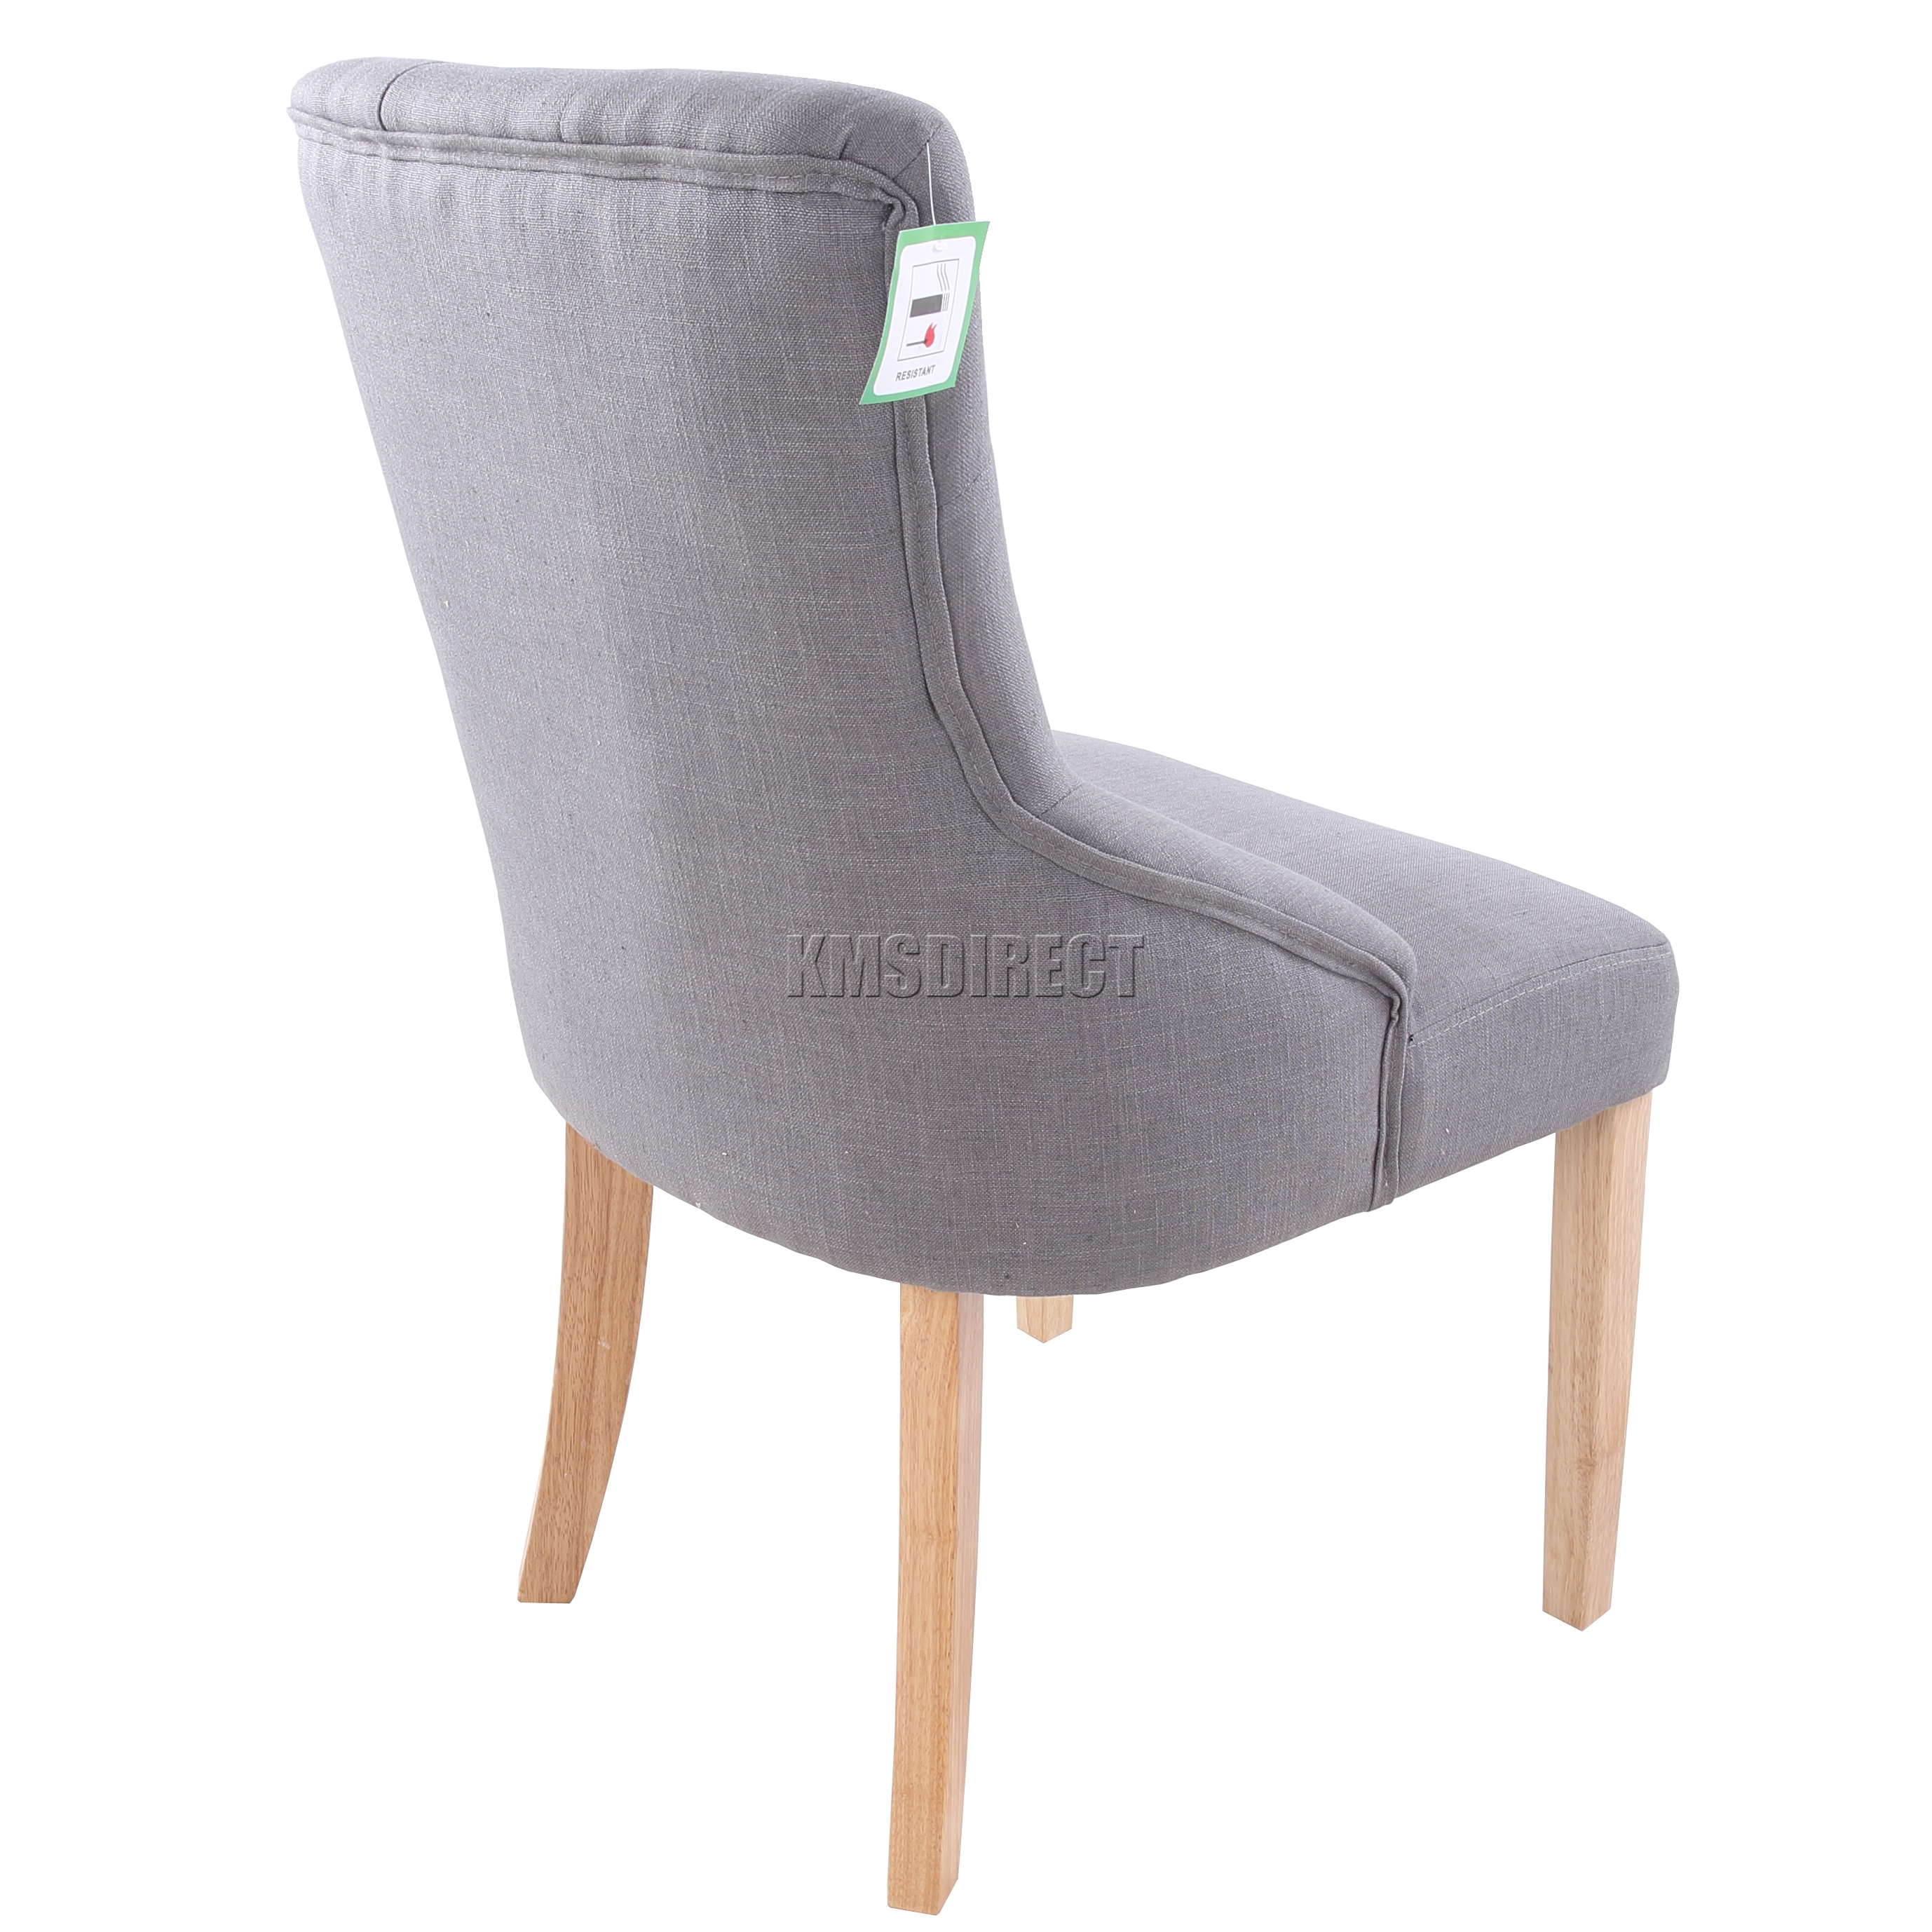 scoop back dining room chairs serta puresoft executive massage chair foxhunter new grey linen fabric tufted